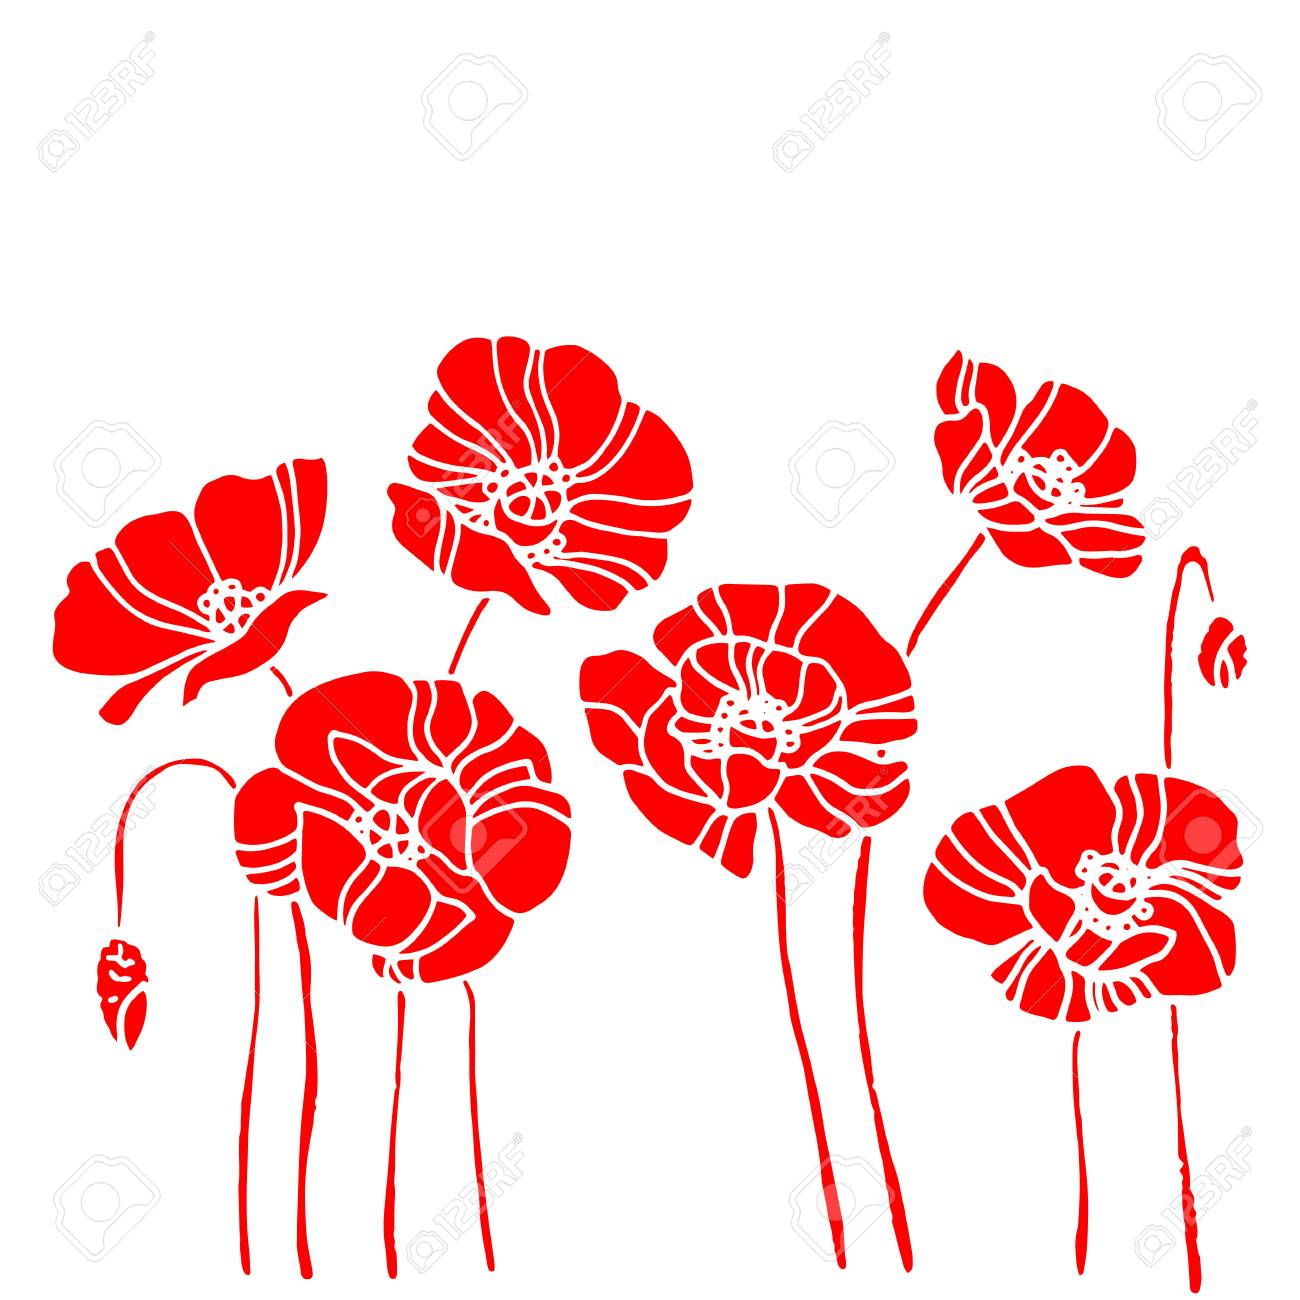 Coquelicot Nature Fleur Vecteur Plante Modele Dessin Illustration